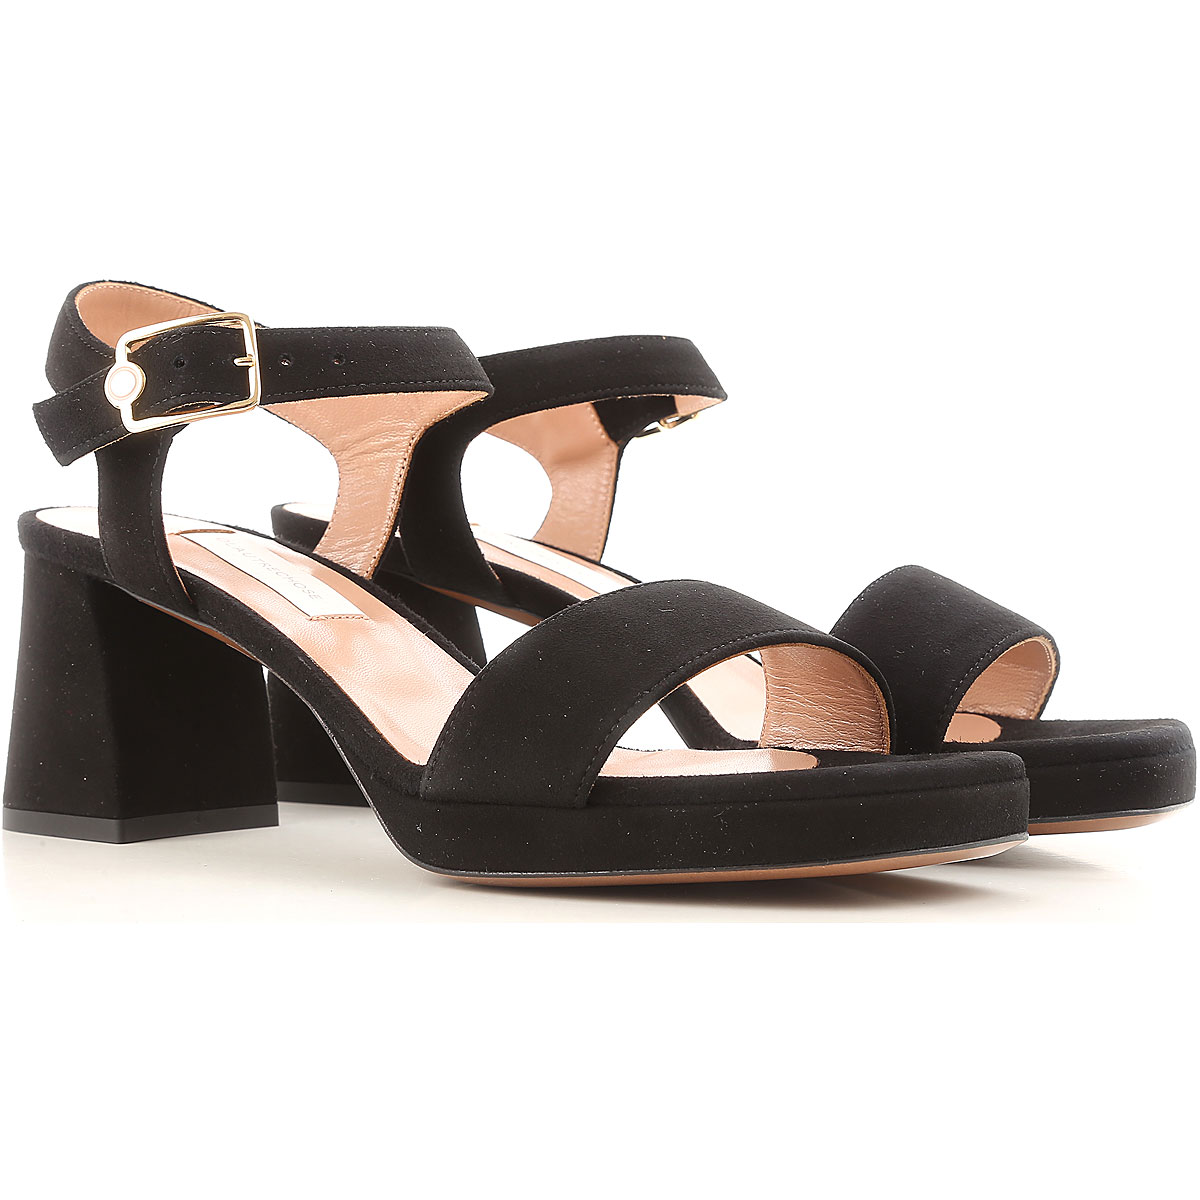 Lautre Chose Sandals for Women On Sale in Outlet, Black, Suede leather, 2019, 5 6